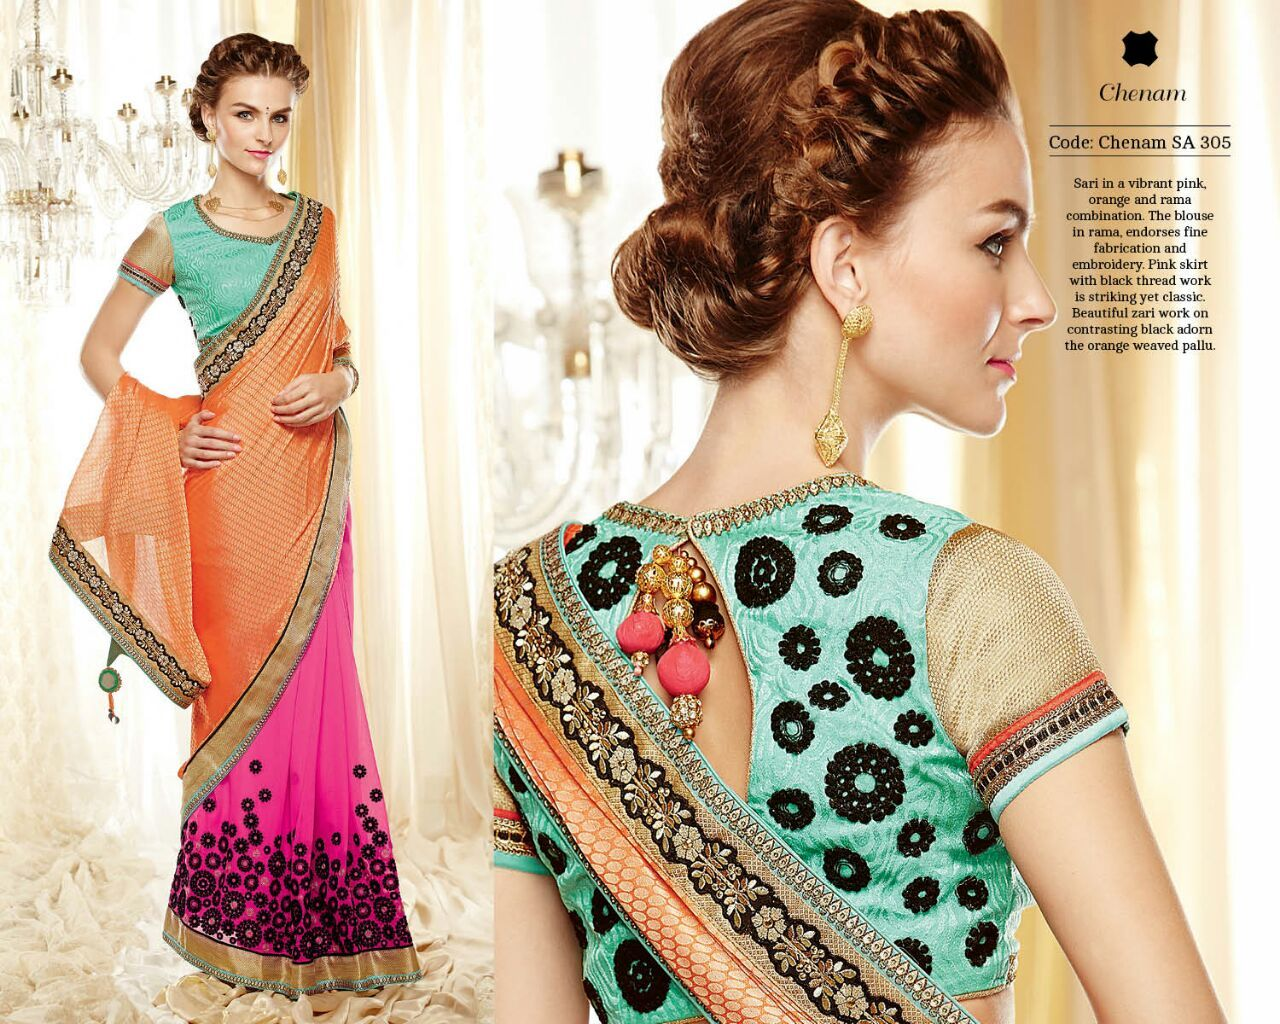 Bridal wedding sarees for you watch our special collection visit